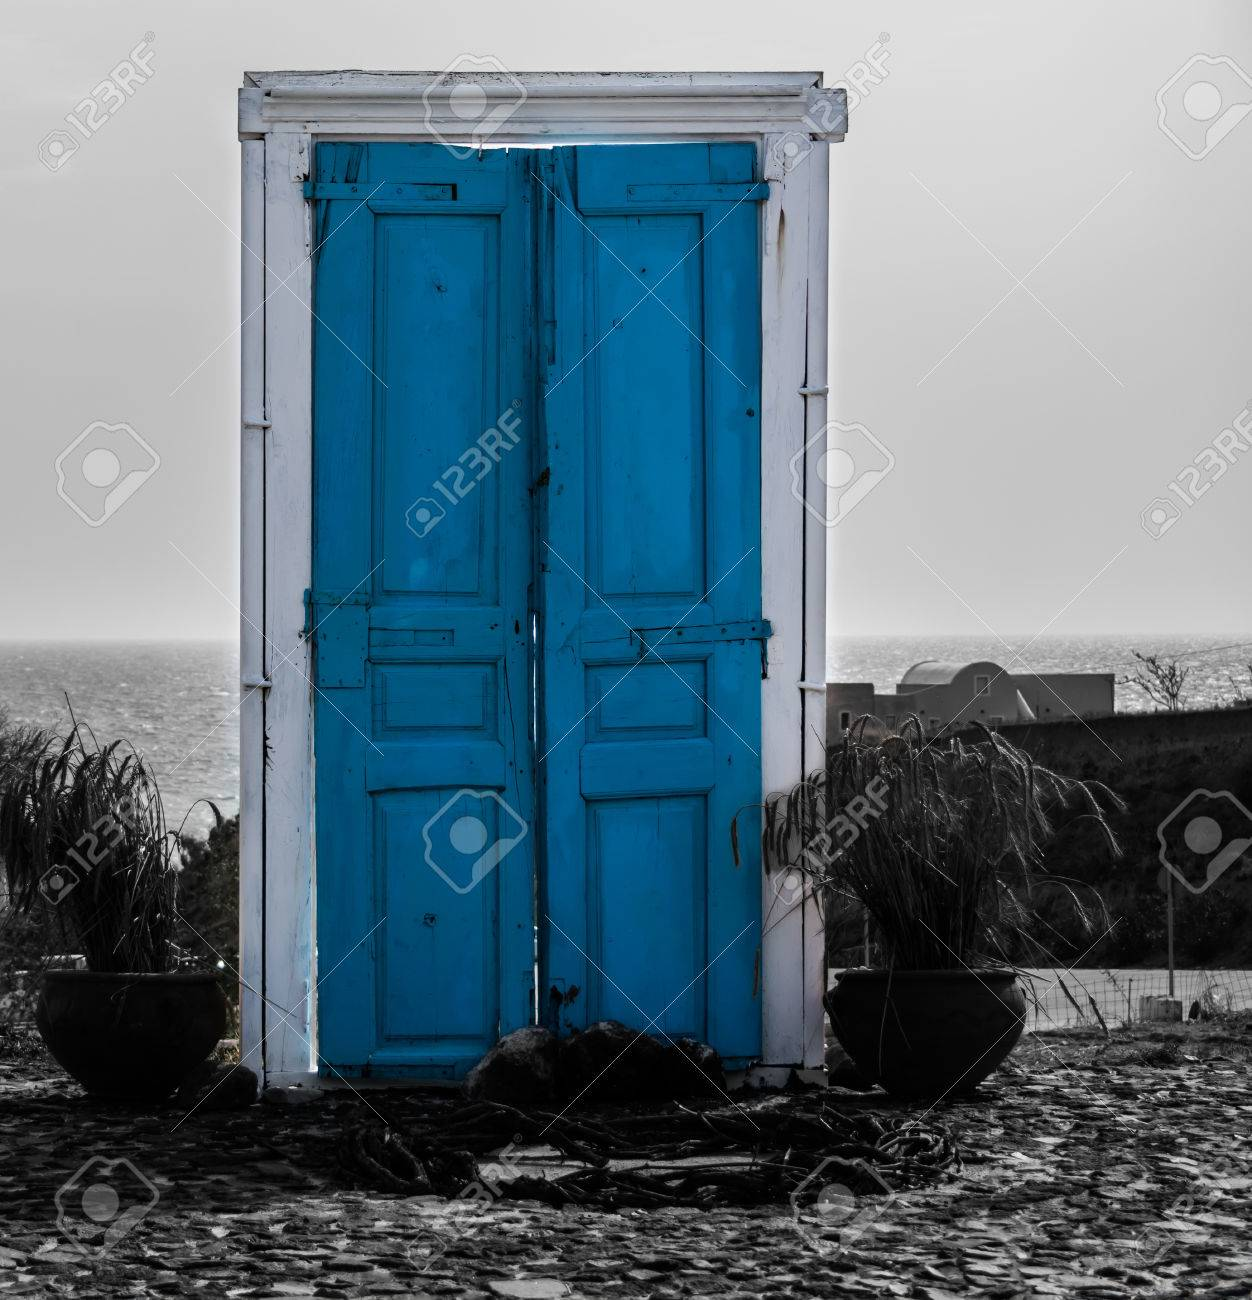 Mystery door Stock Photo - 50033055 & Mystery Door Stock Photo Picture And Royalty Free Image. Image ...